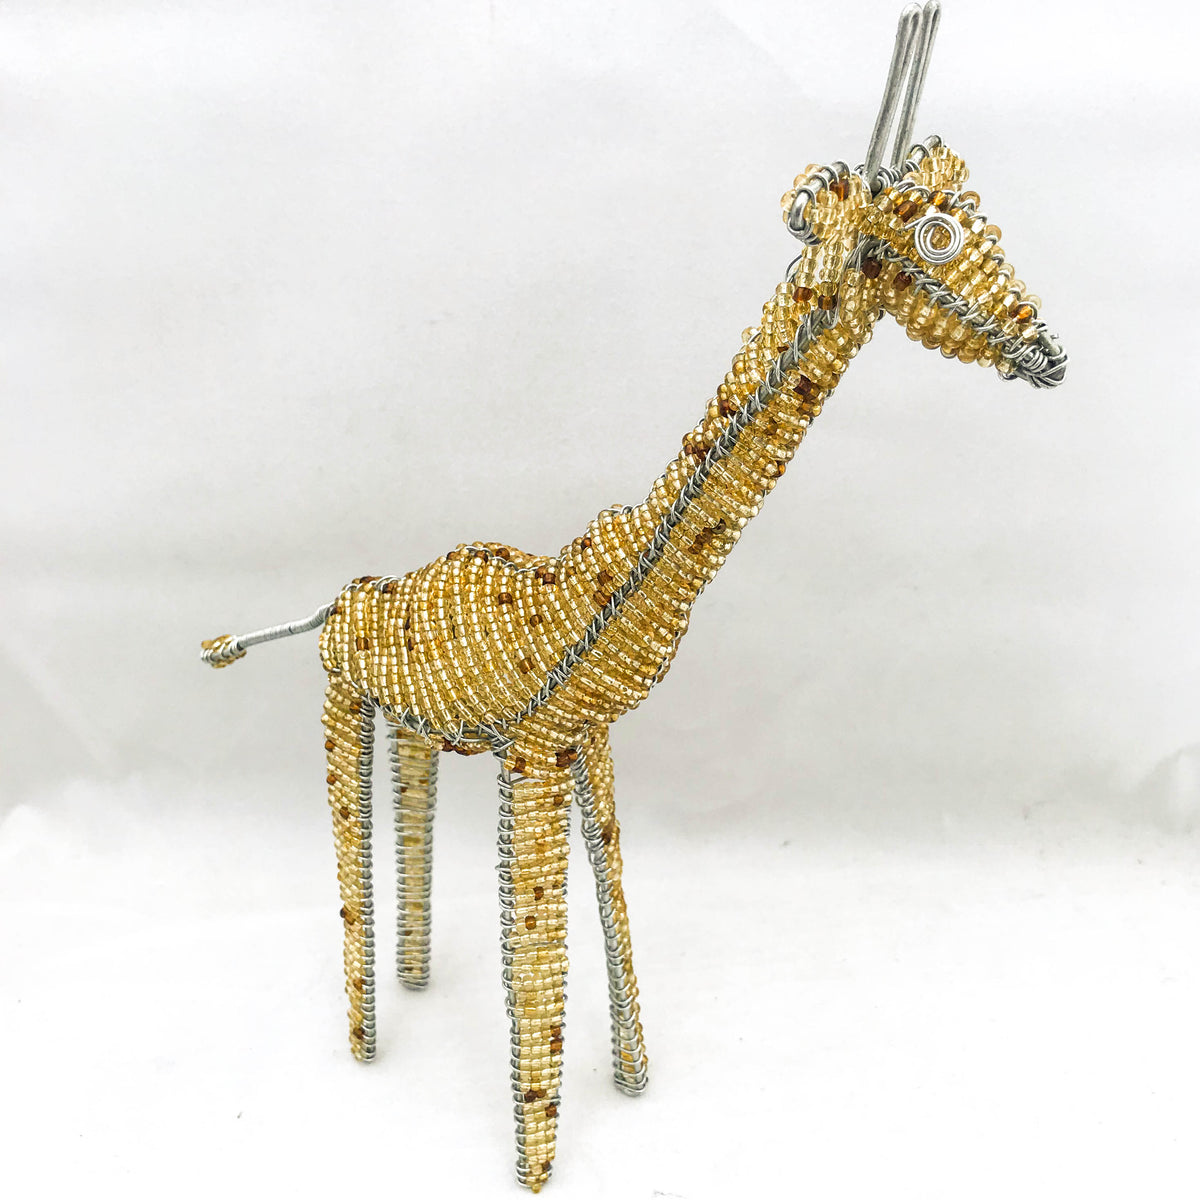 Bead and Wire Animals